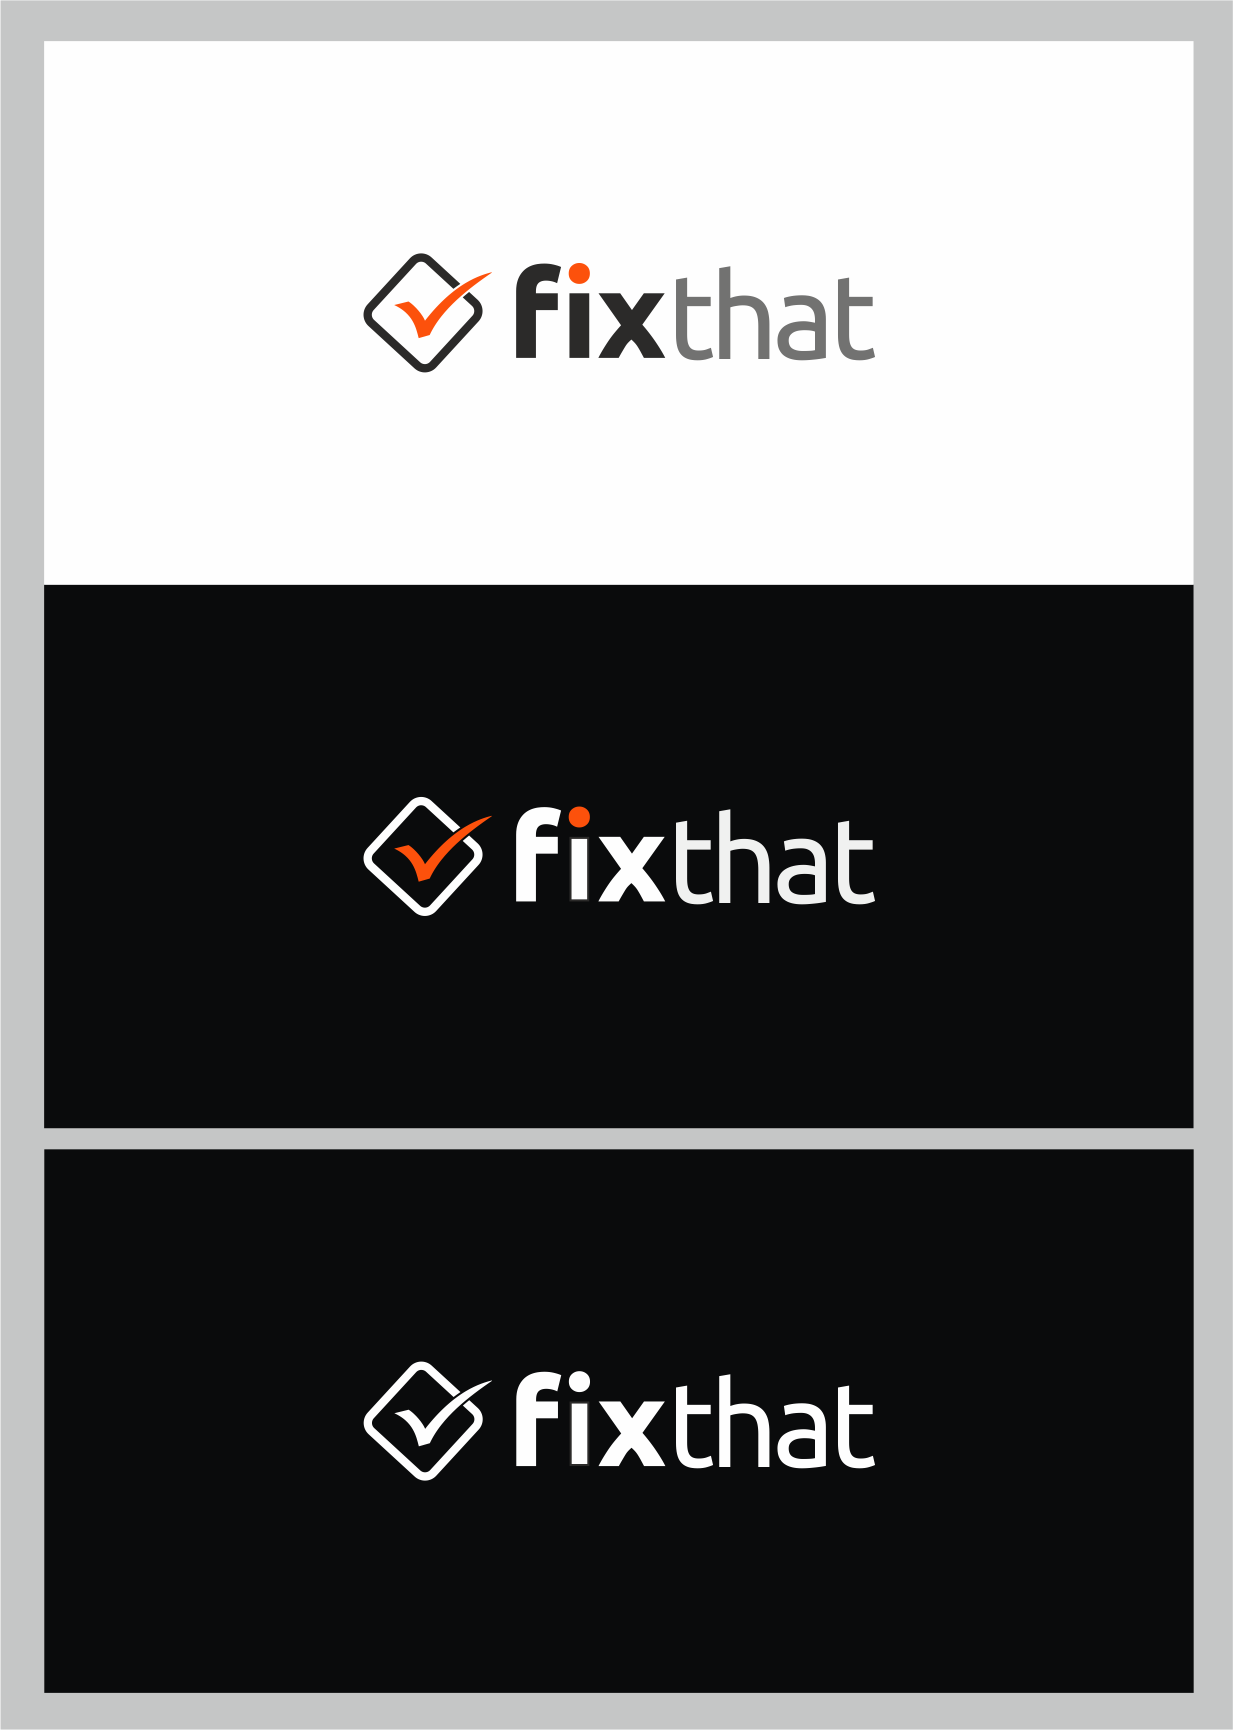 logo for FixThat